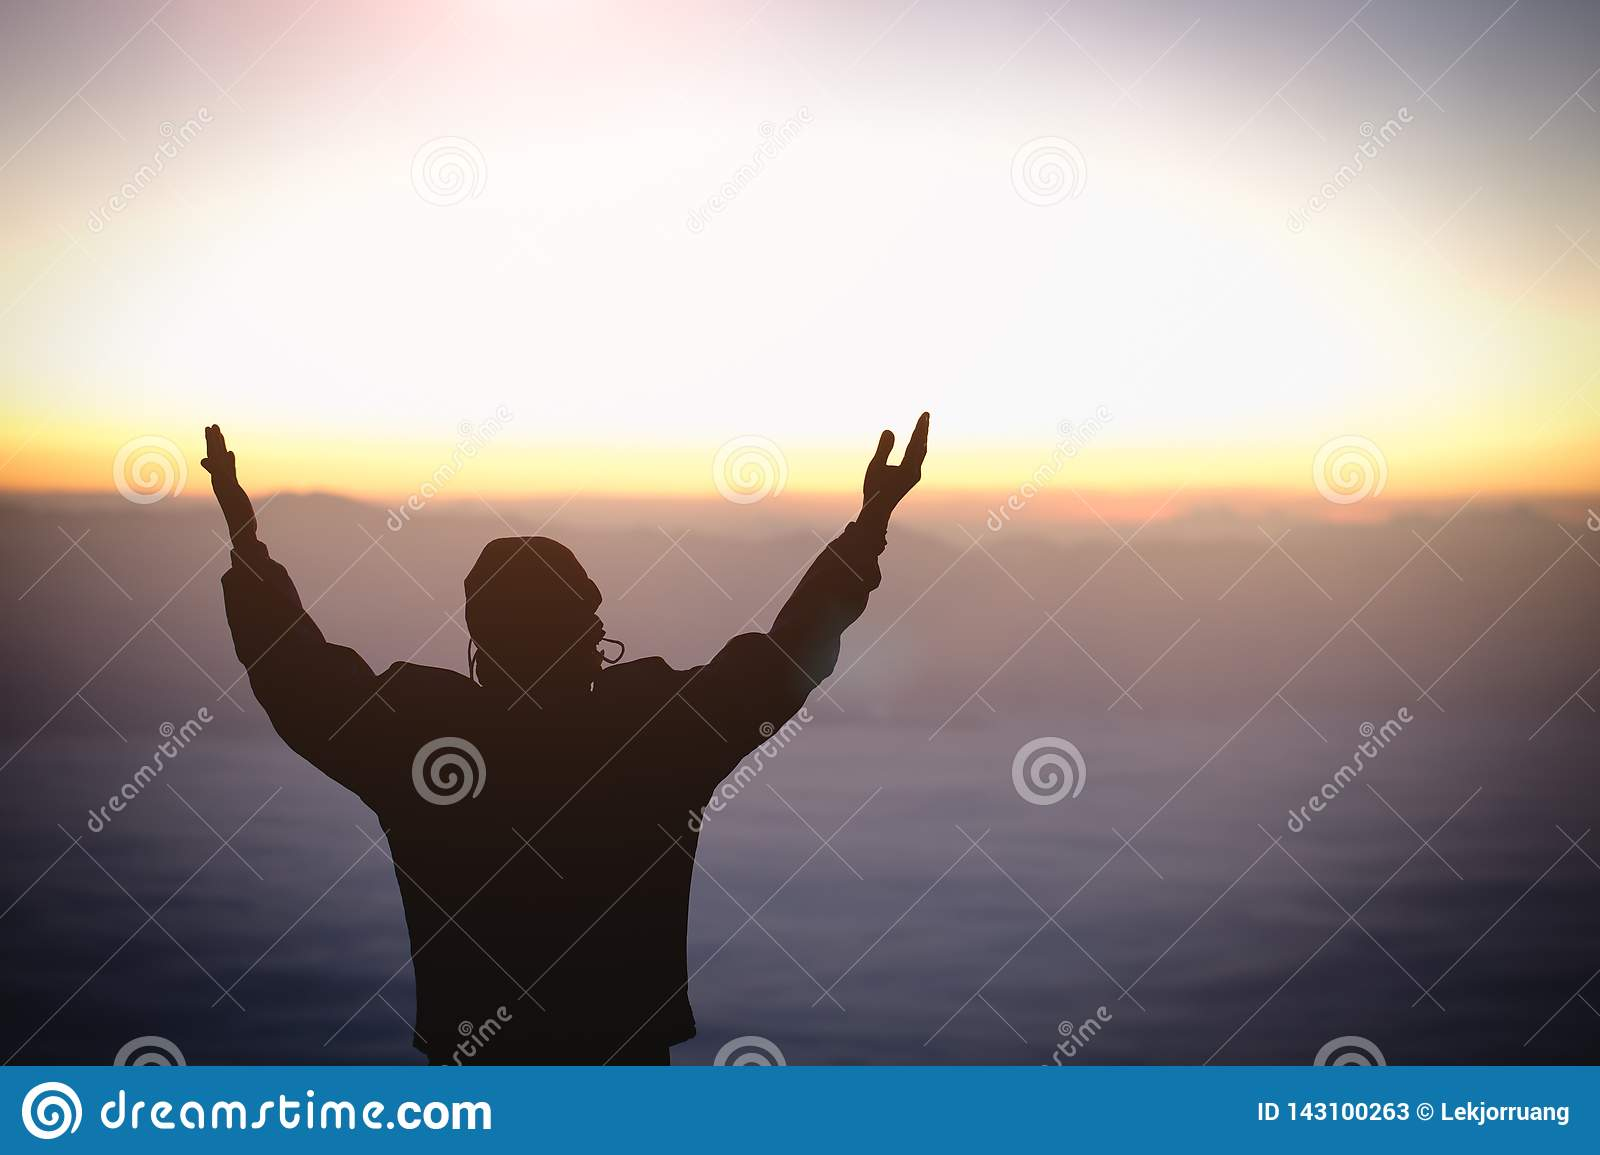 Silhouette of young  human hands open palm up worship and praying to god  at sunrise, Christian Religion concept background